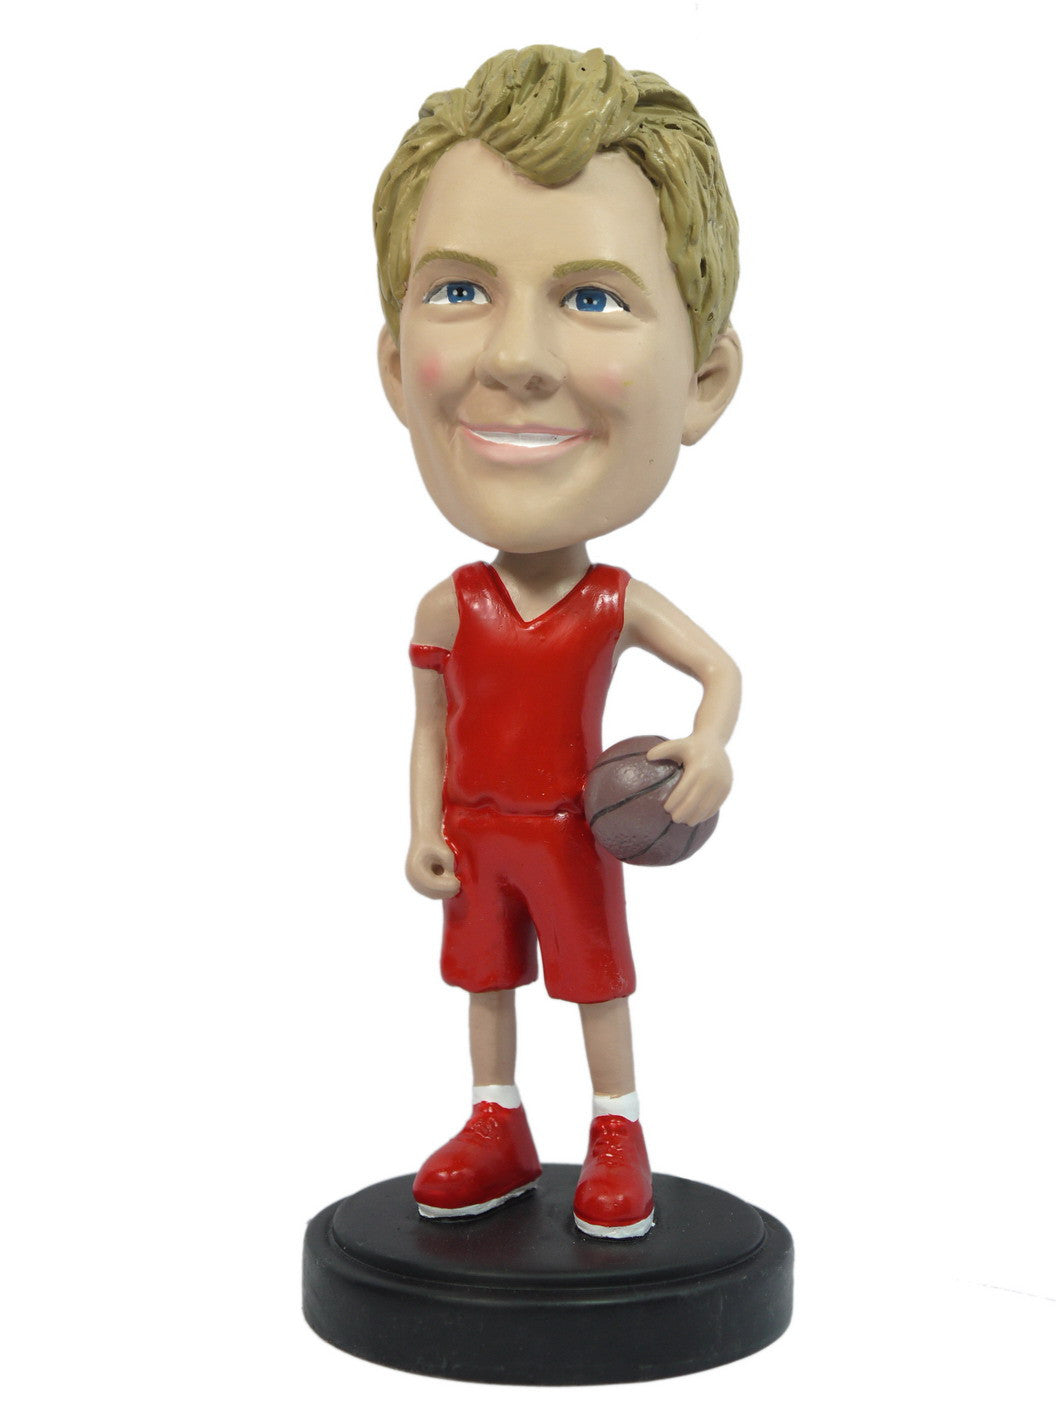 Basketball Fan bobblehead